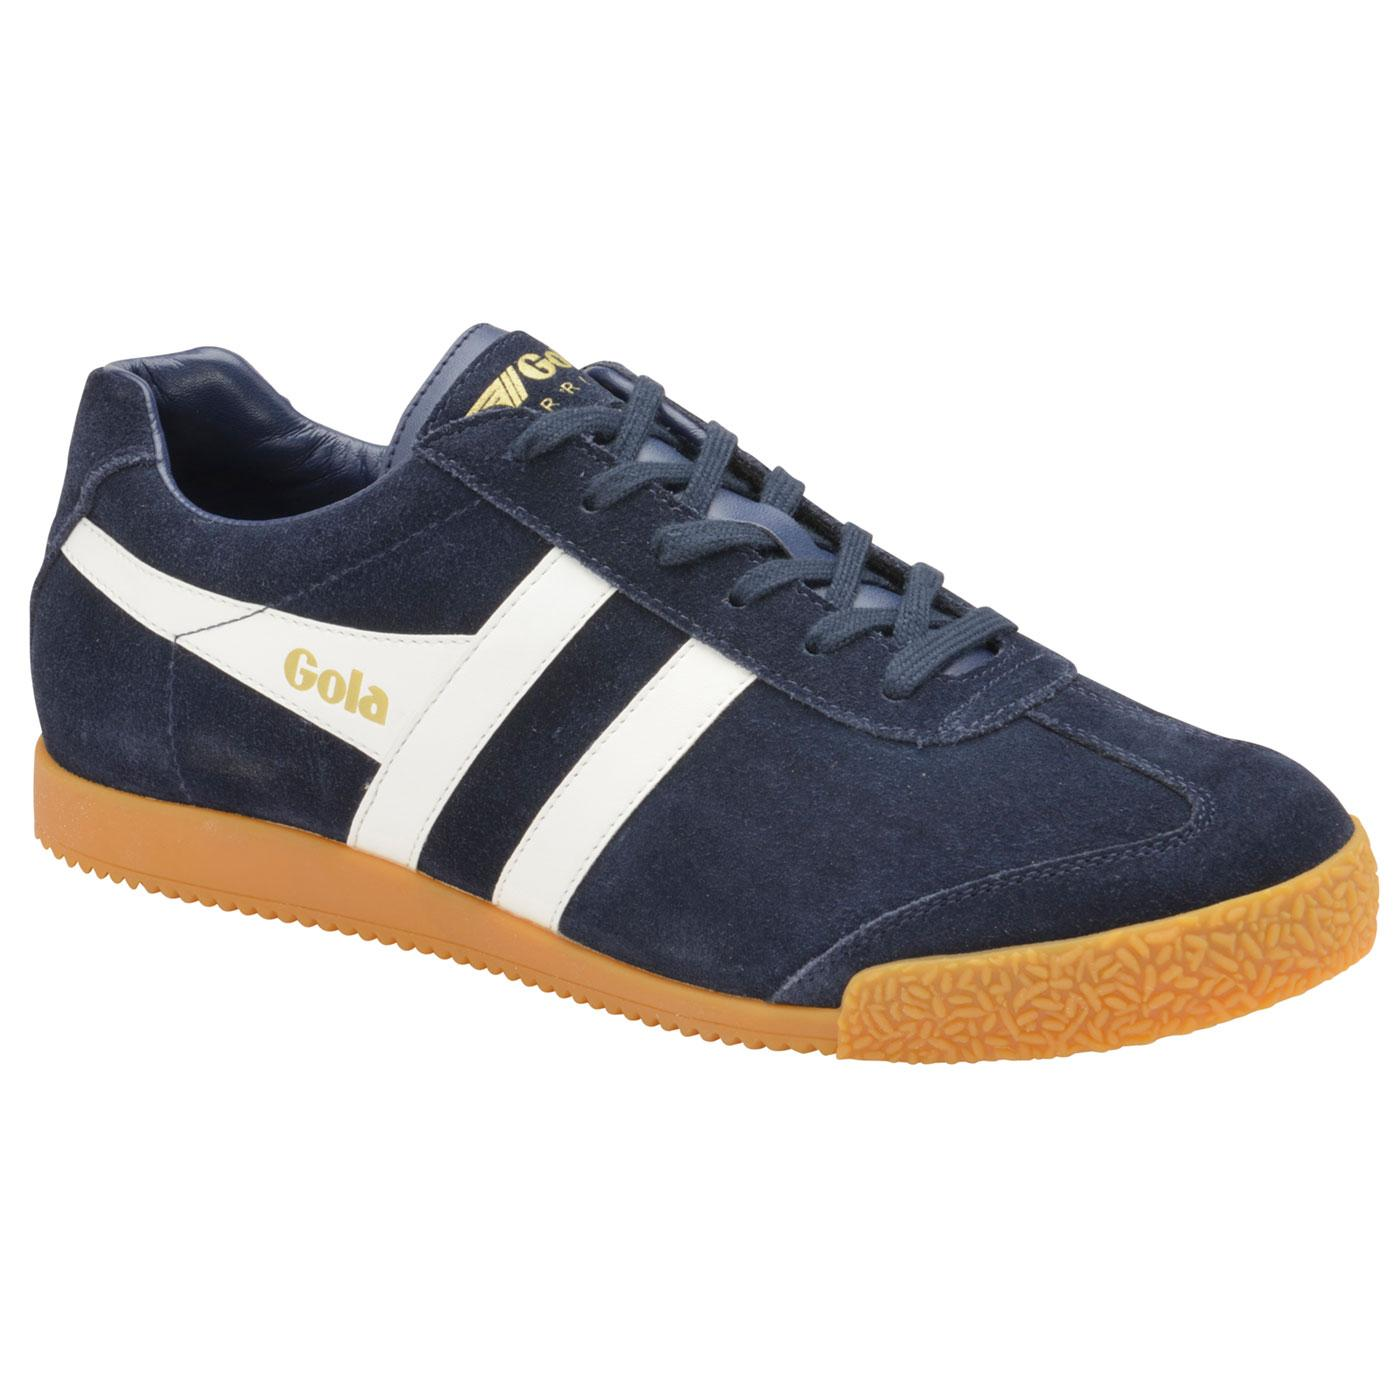 GOLA Harrier Suede Mens Retro 1970s Trainers Navy